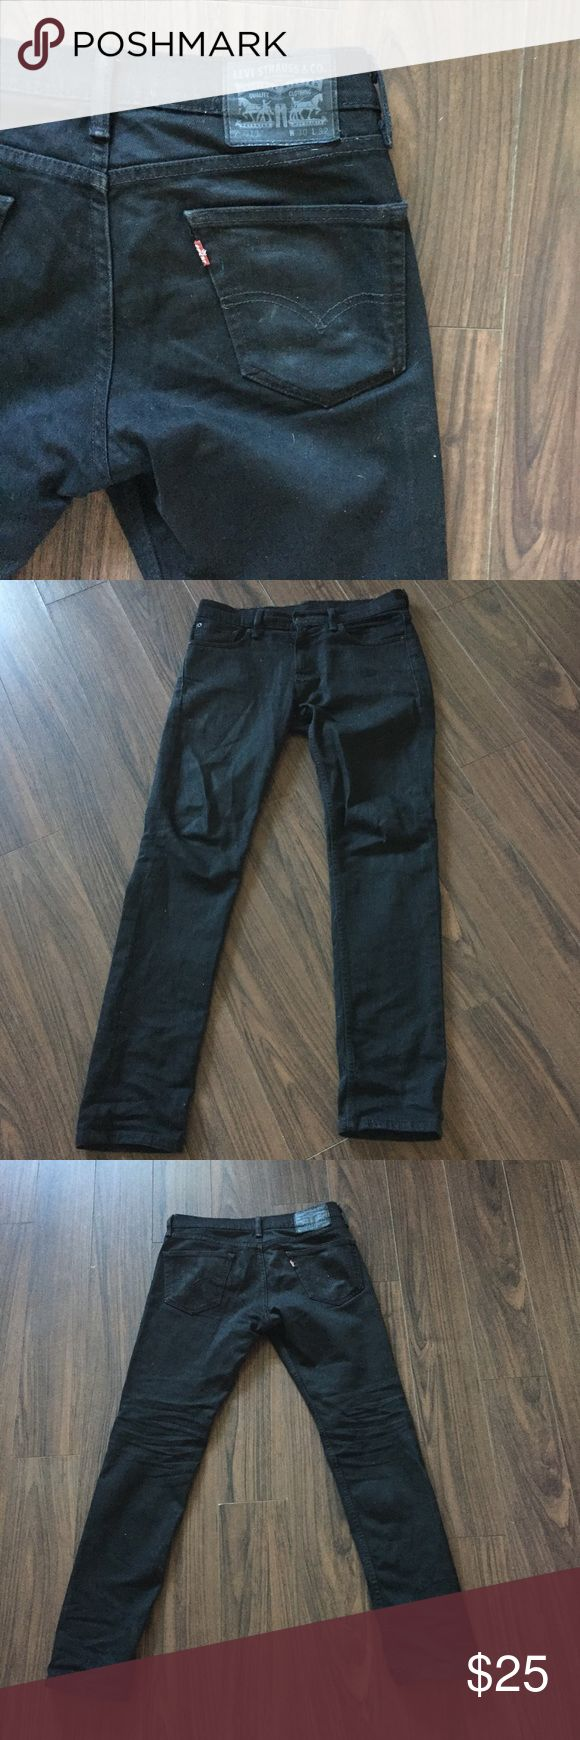 Black Levi's Jeans Men's Levi Jeans in black in size 29x32. Gently worn and in great condition! Waist 16.5 Outseam 38 Inseam 31 Levi's Jeans Slim